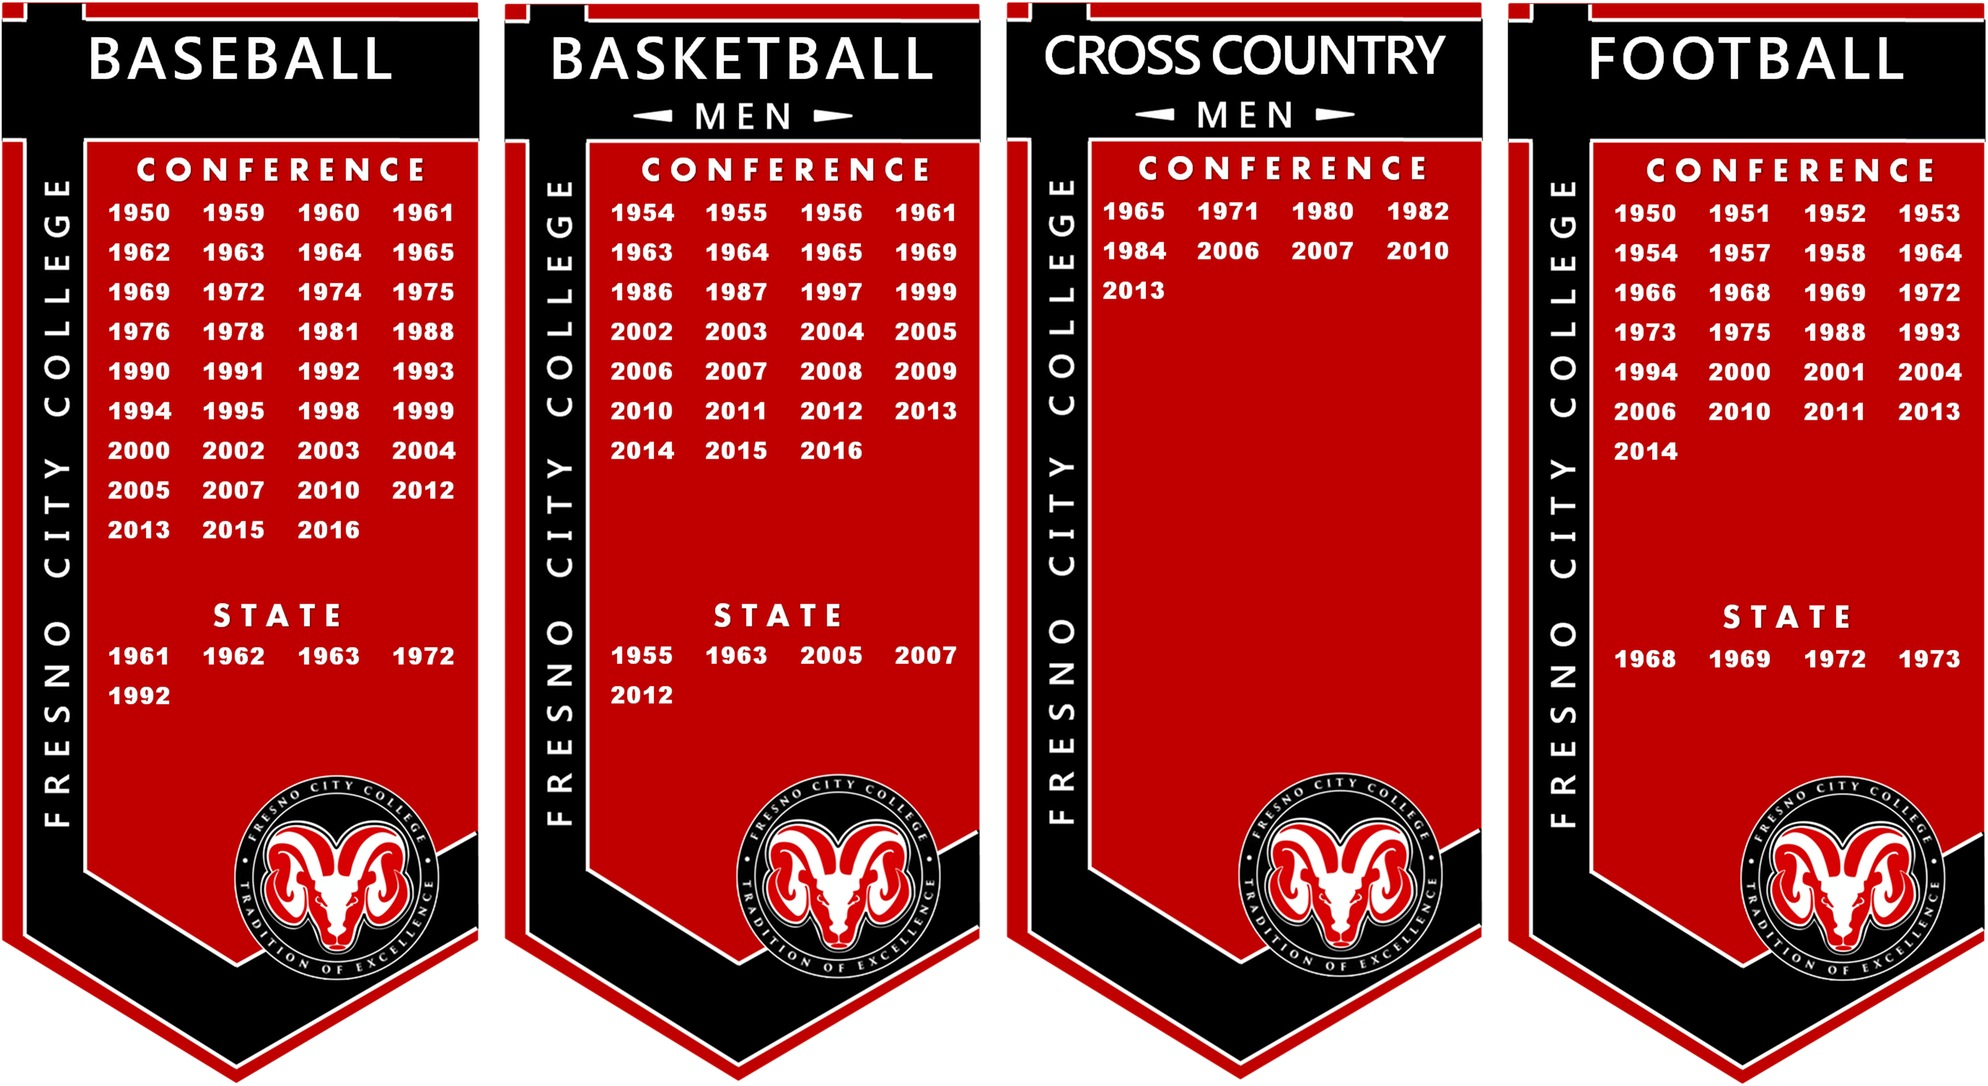 lists of Conference and Championship years for FCC's Baseball, Men's Basketball, Men's Cross Country, and Football teams